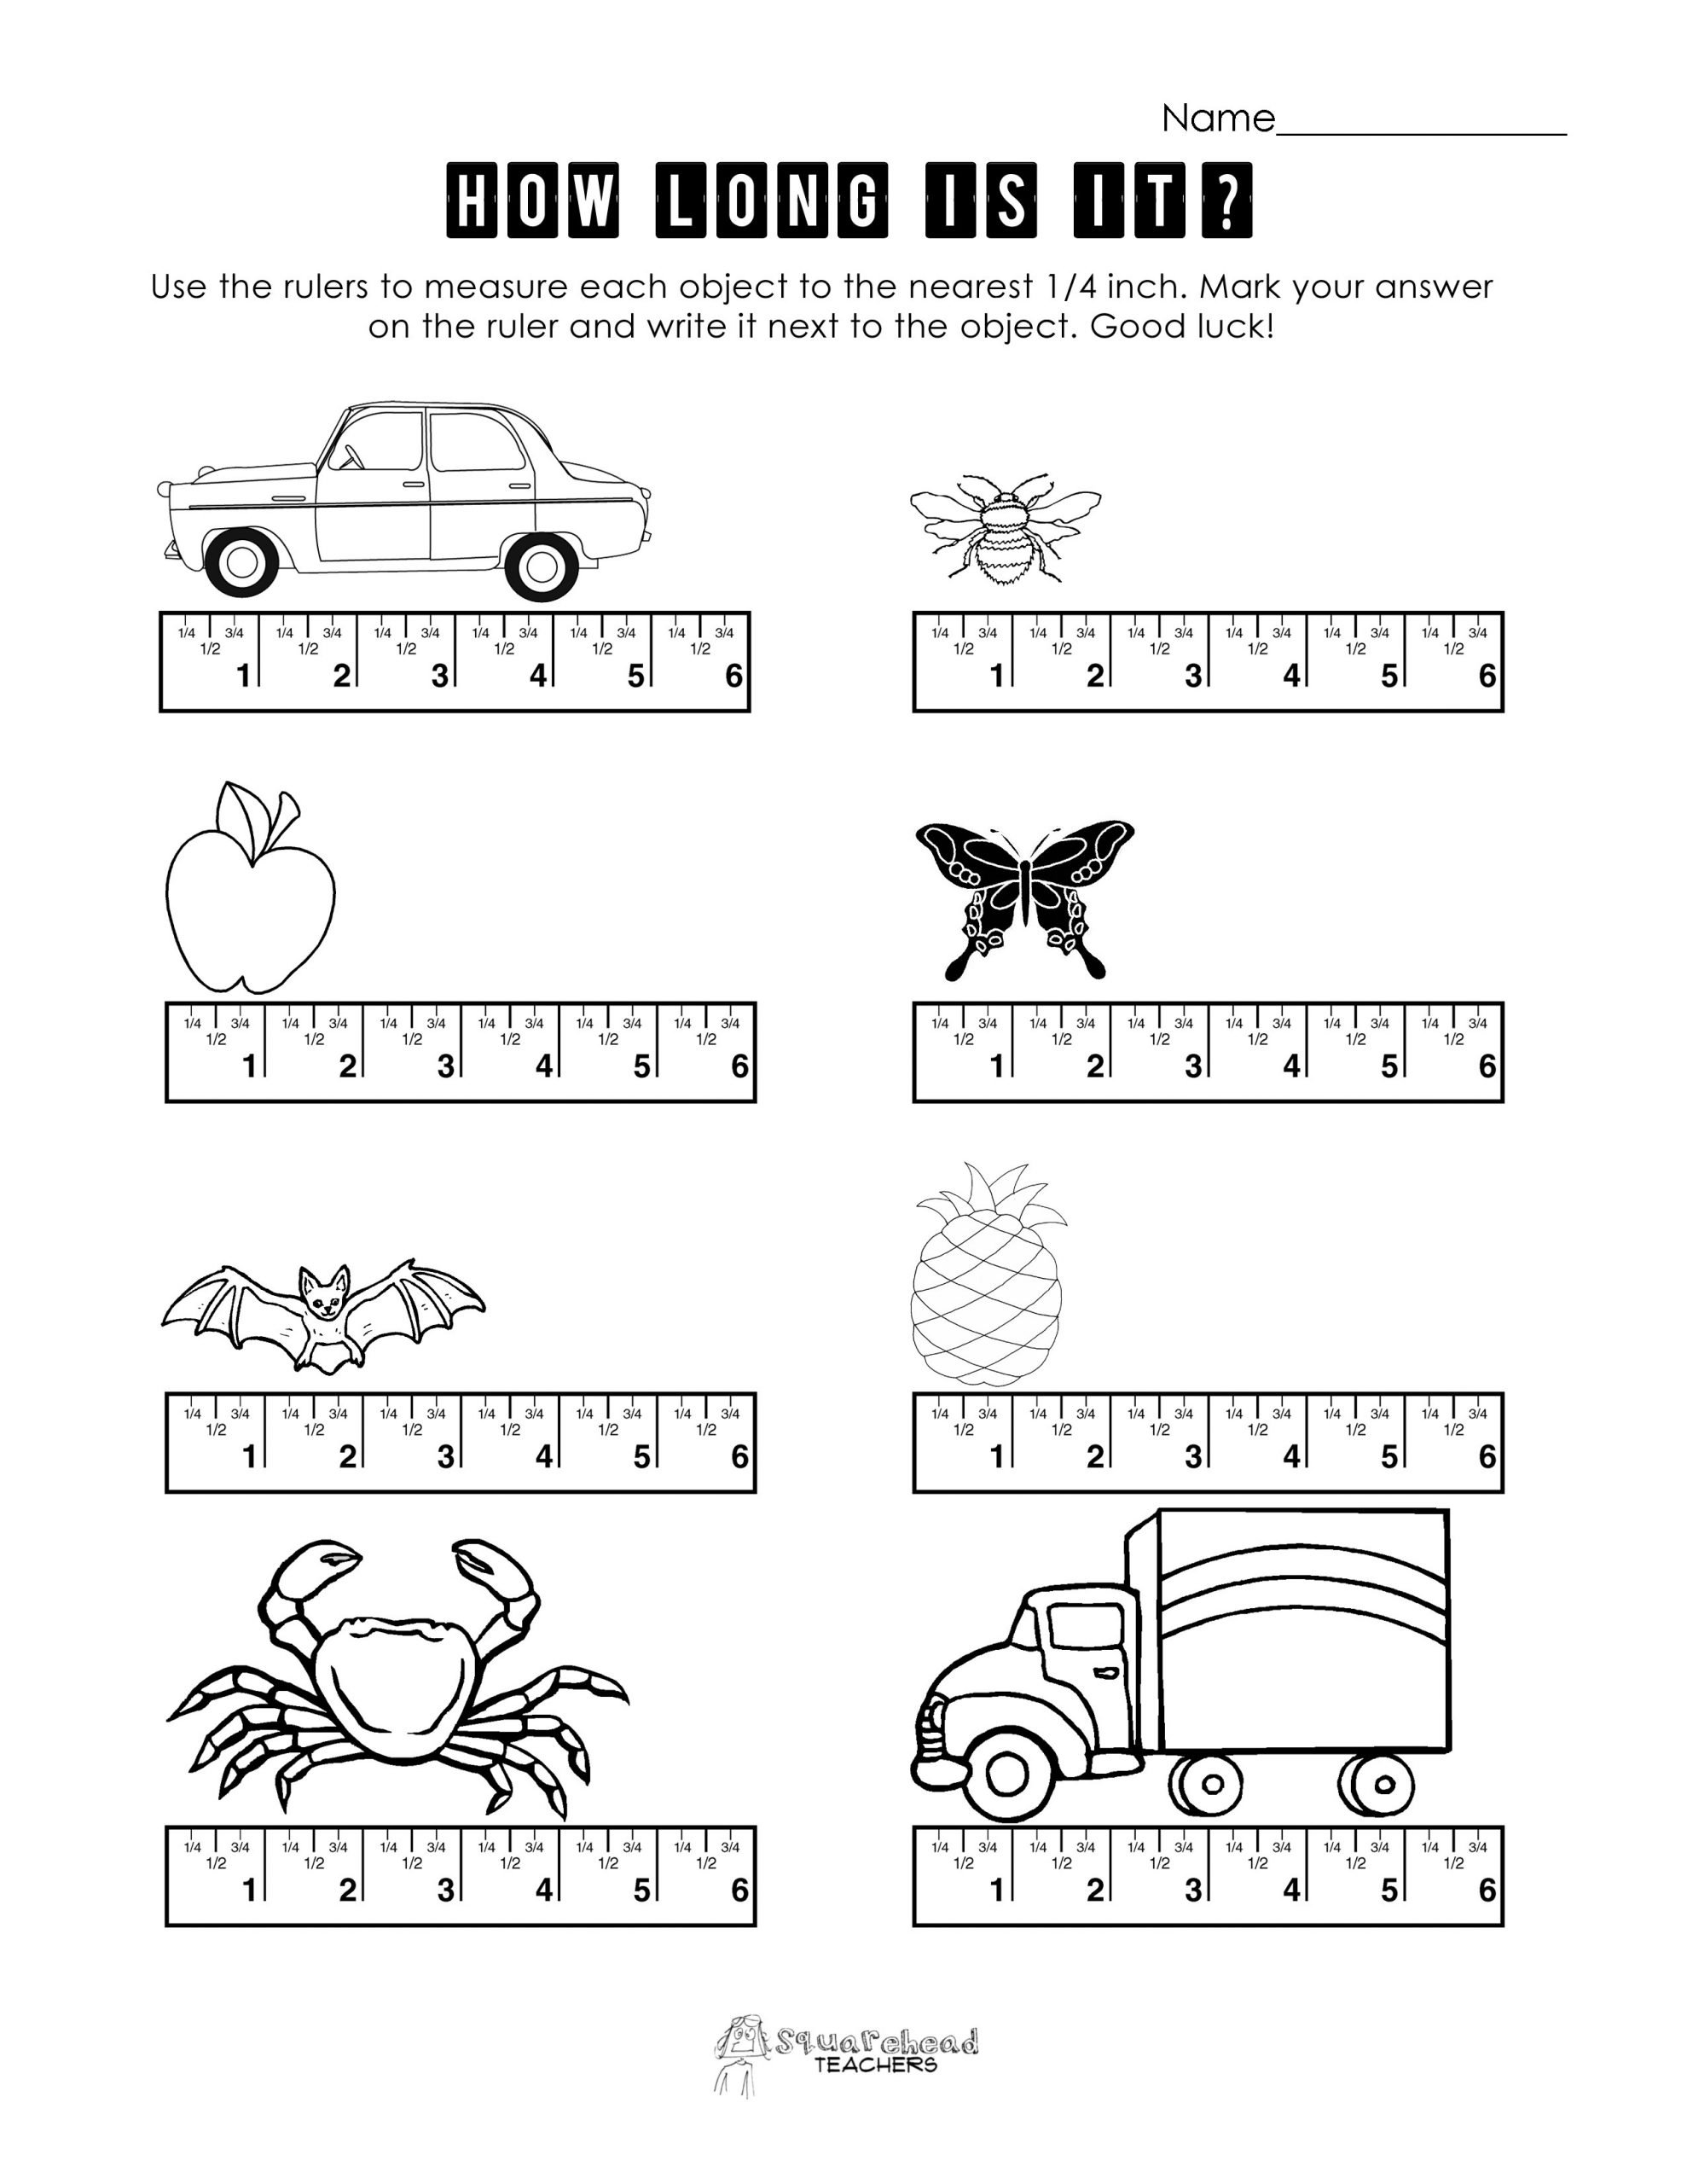 Reading A Ruler Worksheet Answers Measurement Practice 1